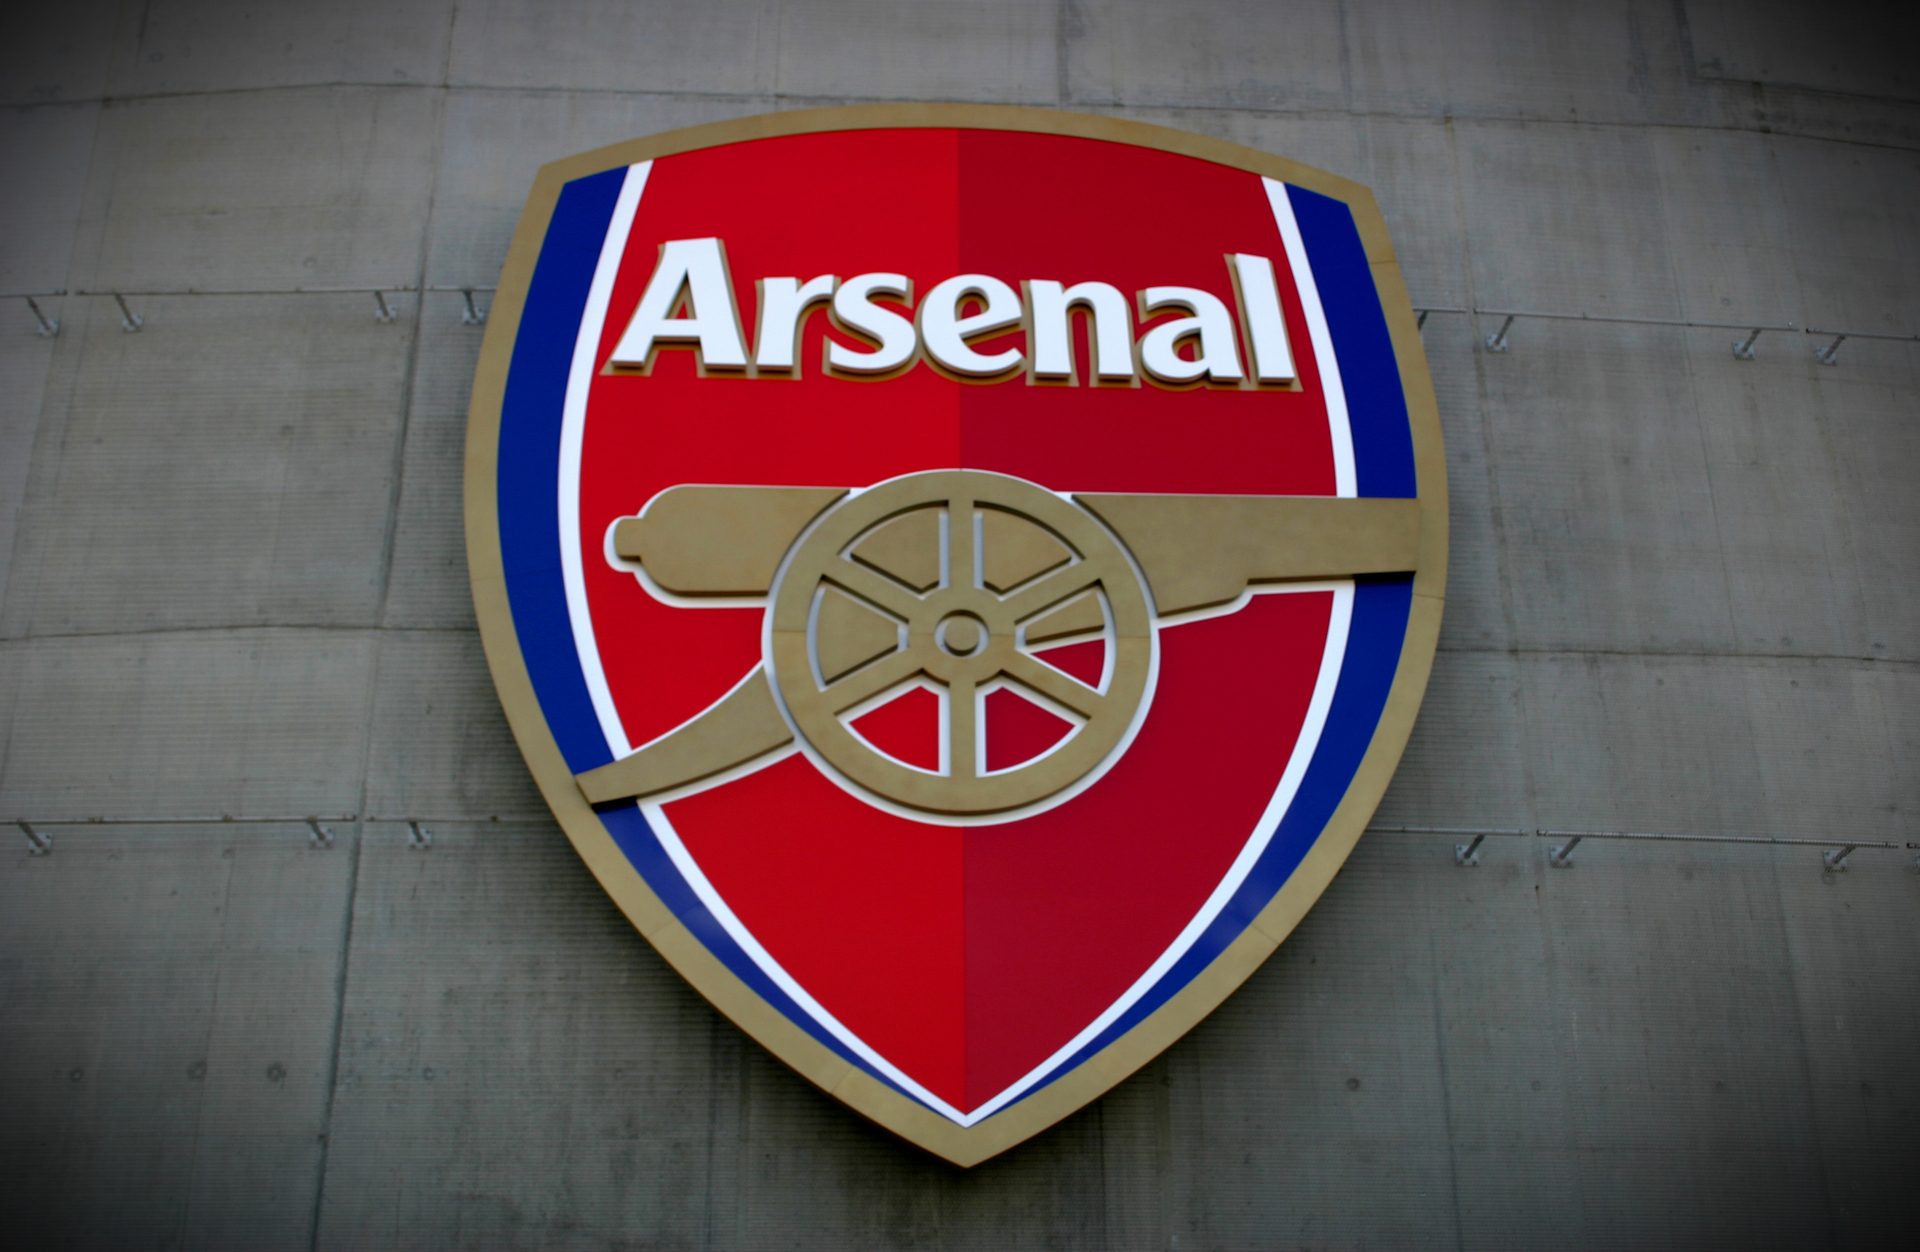 arsenal - Arsenal Photo (333011) - Fanpop